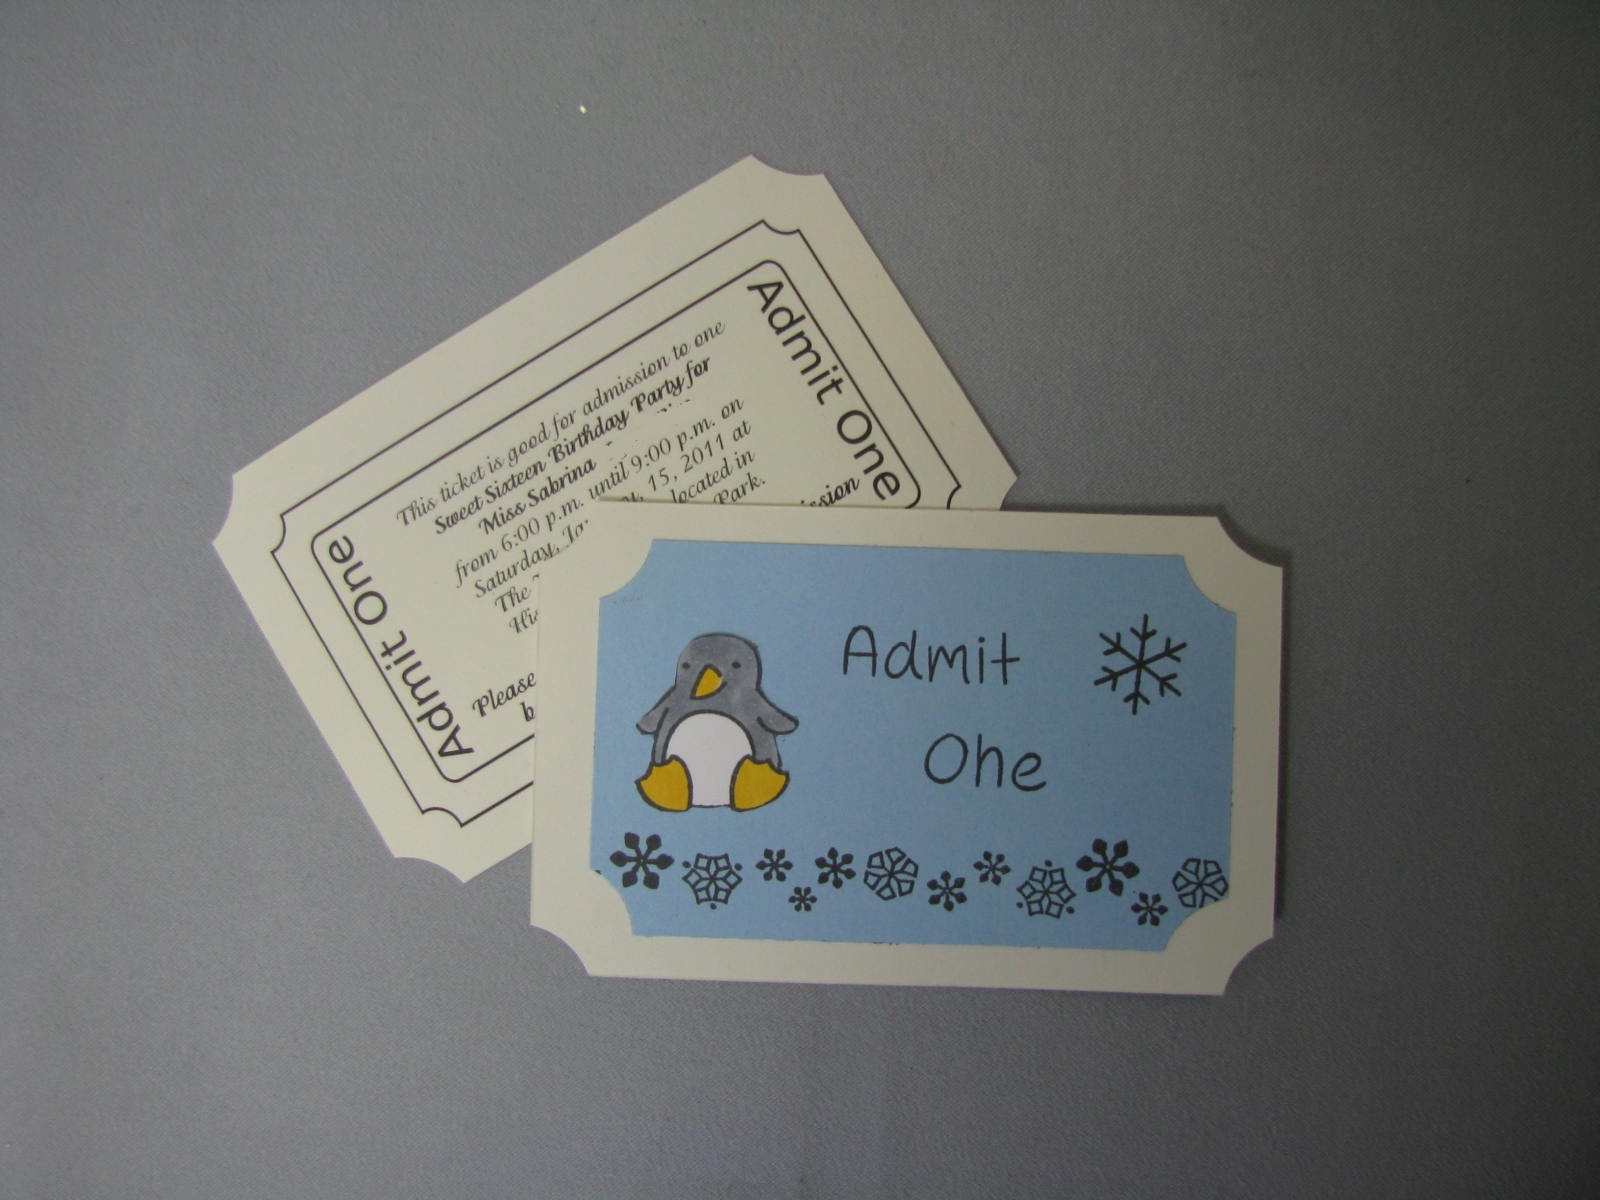 act admission ticket Personalize your own admission ticket with a special place or date idea to surprise your loved one.